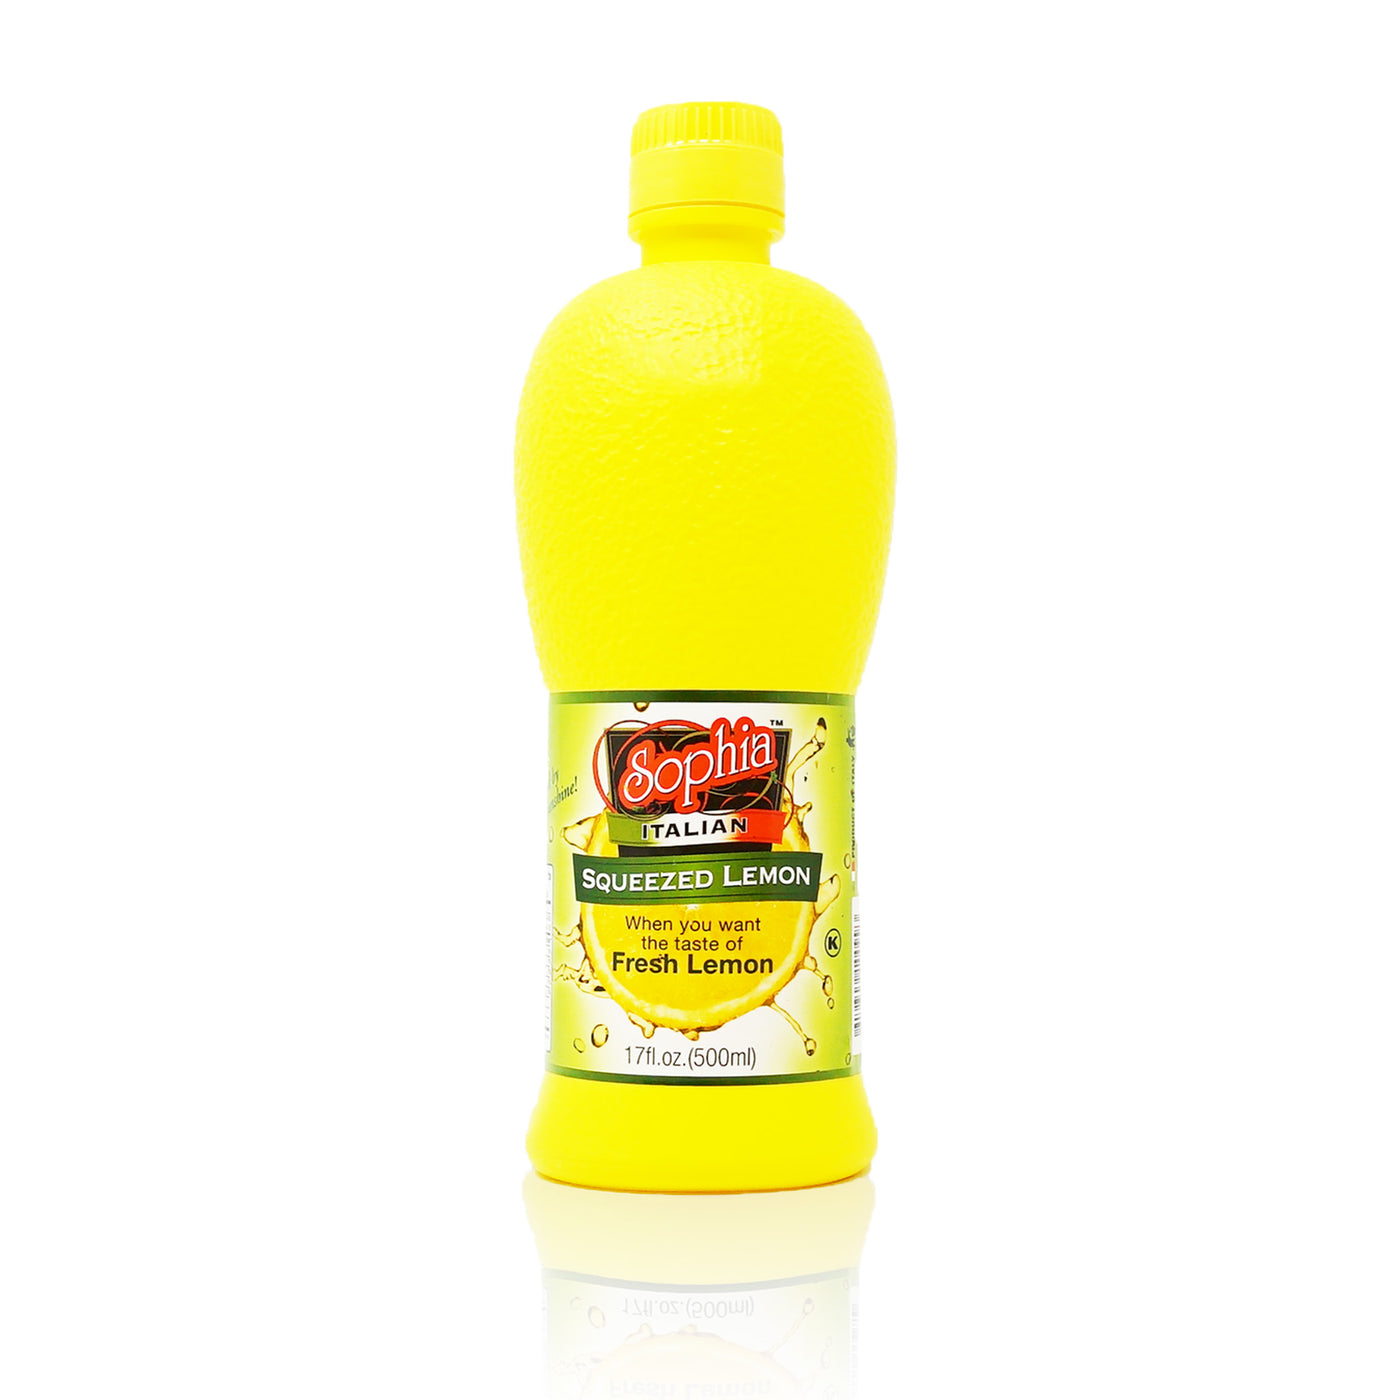 Sophia Lemon Juice Condiment from Sicily 17oz